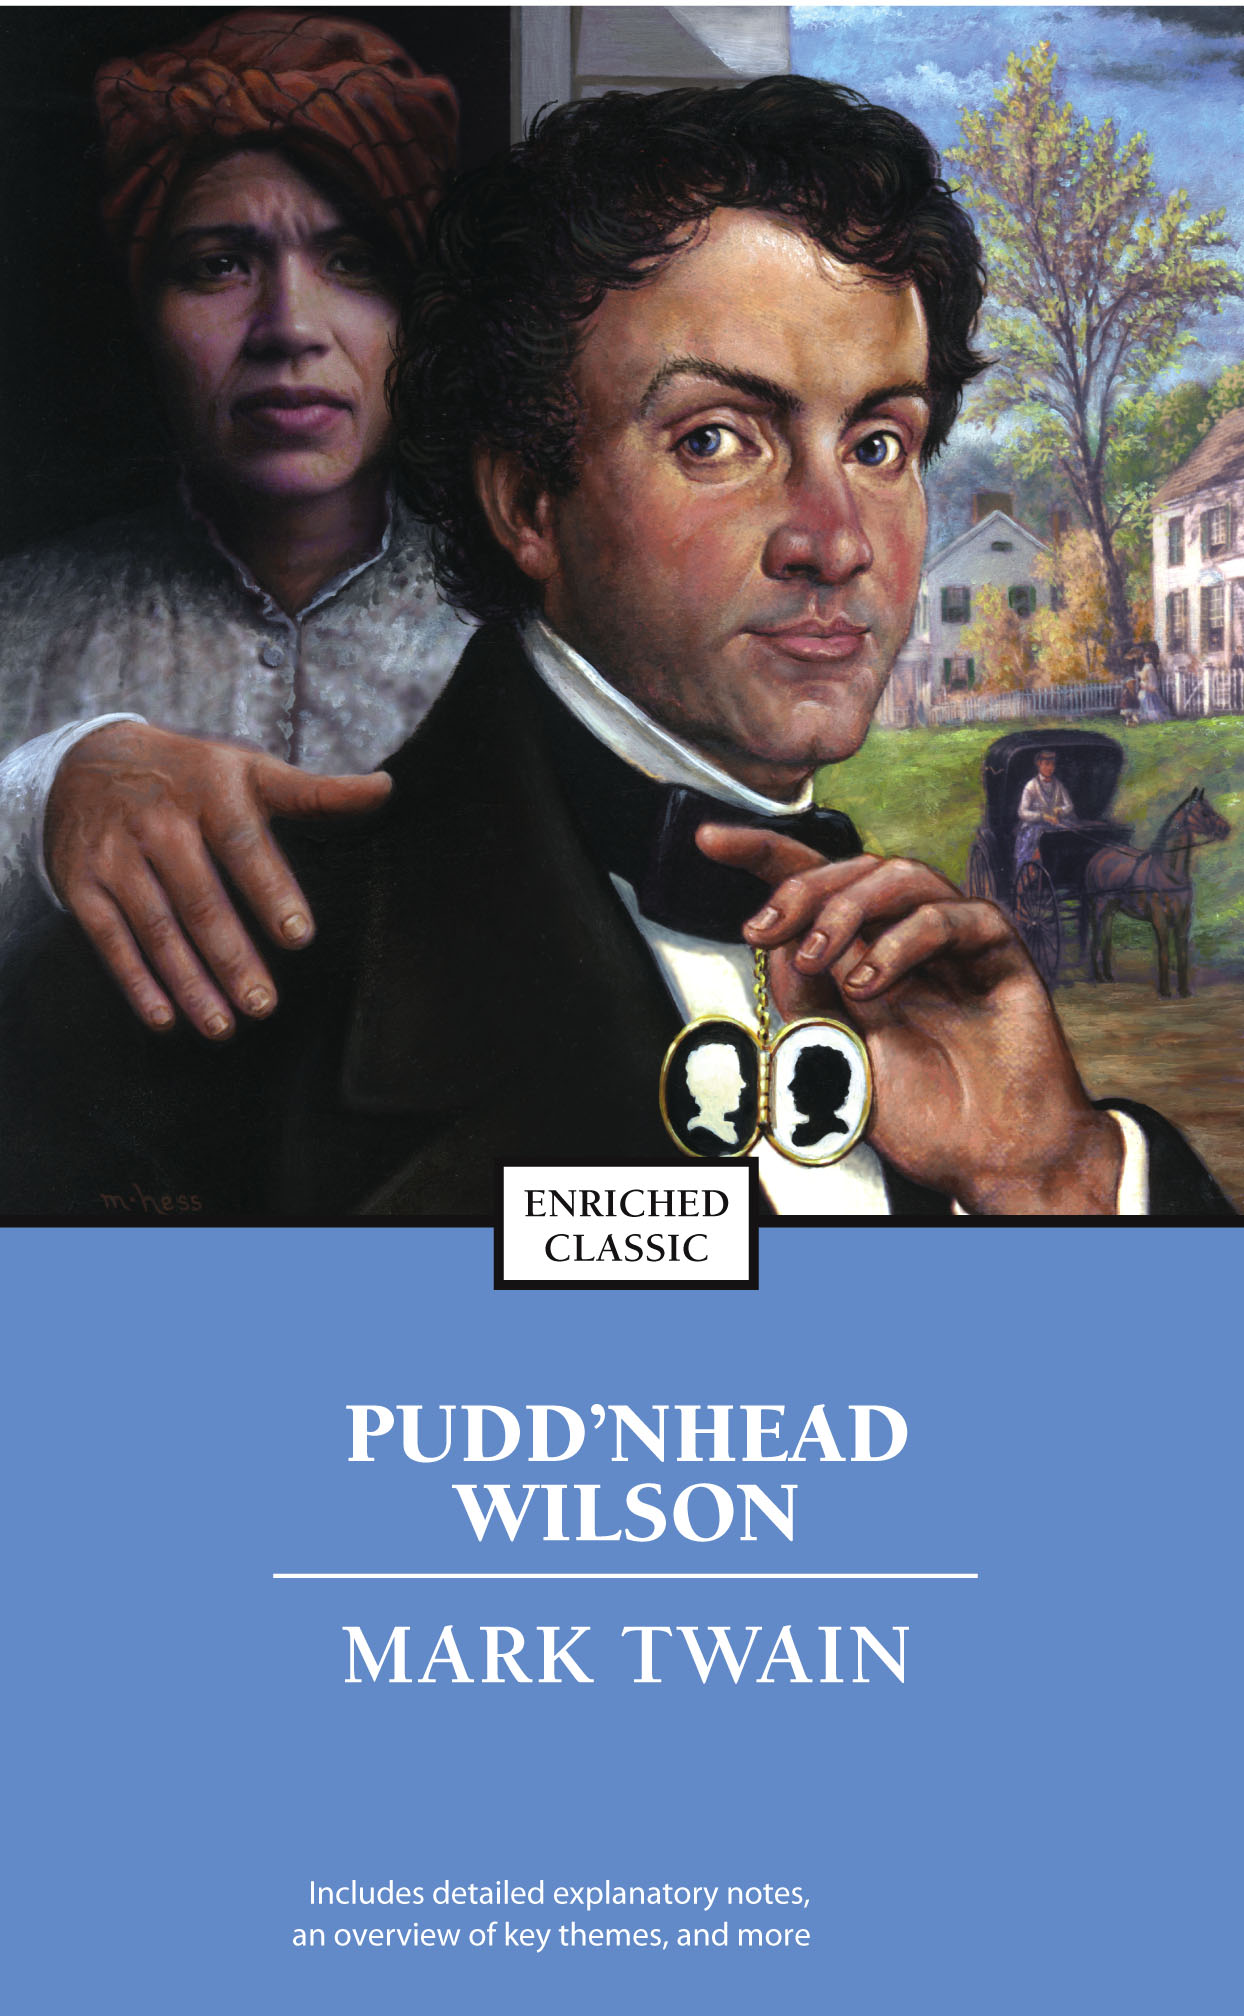 puddnhead wilson by mark twain essay Free essay: a character analysis of tom driscoll in pudd'nhead wilson by mark  twain, the story of two boys, who were switched at early childhood, is told.